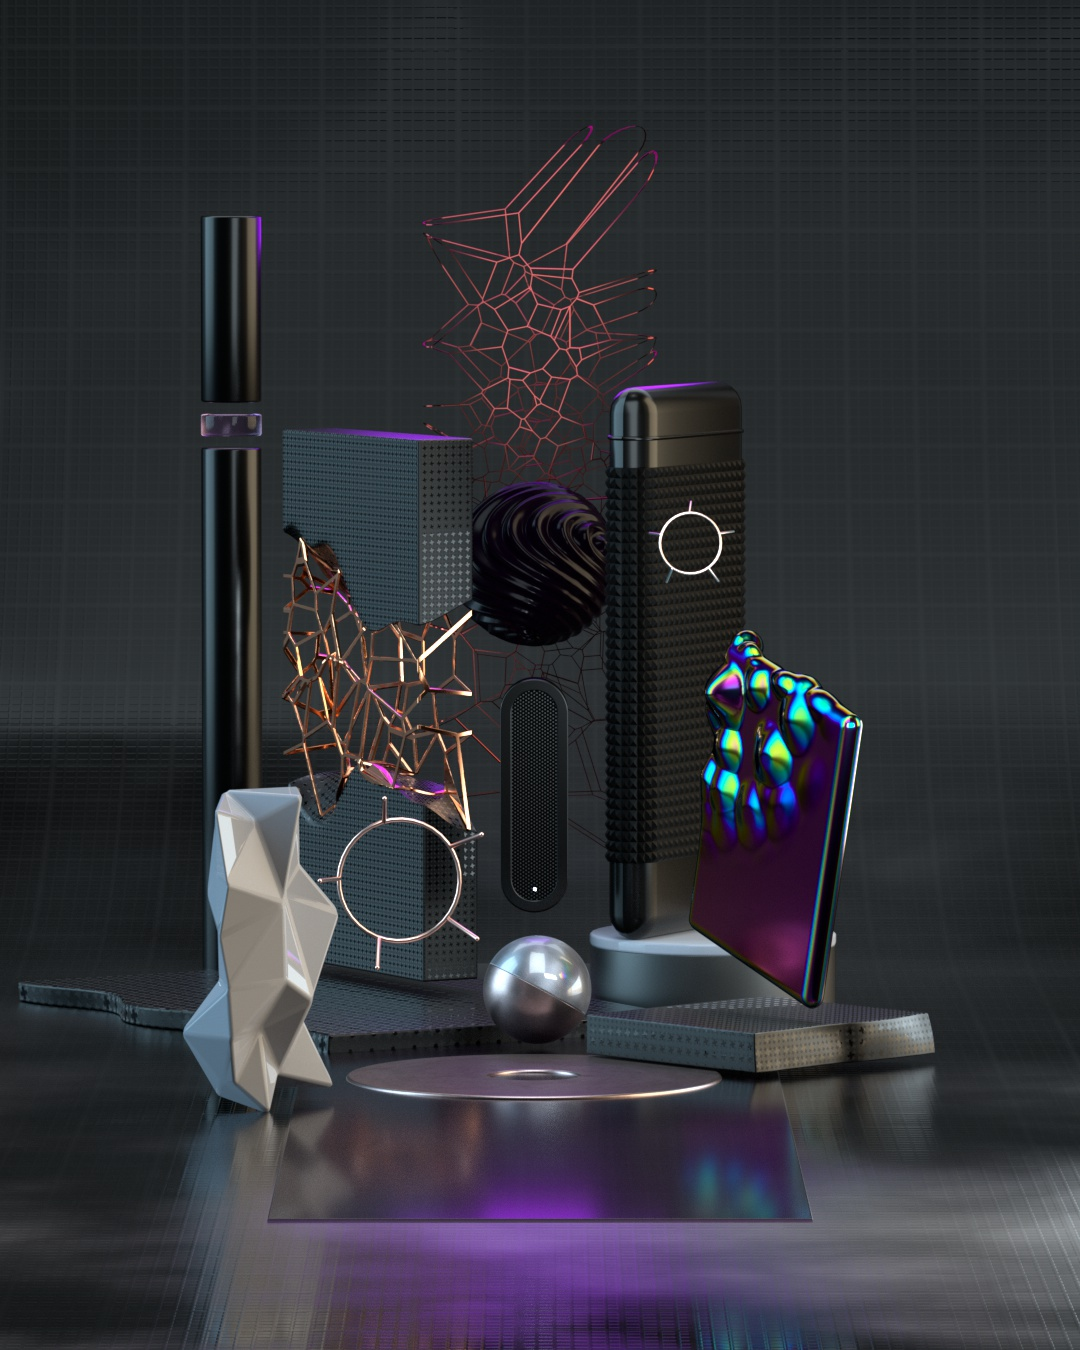 3D rendering fourth world black materials with technical objects